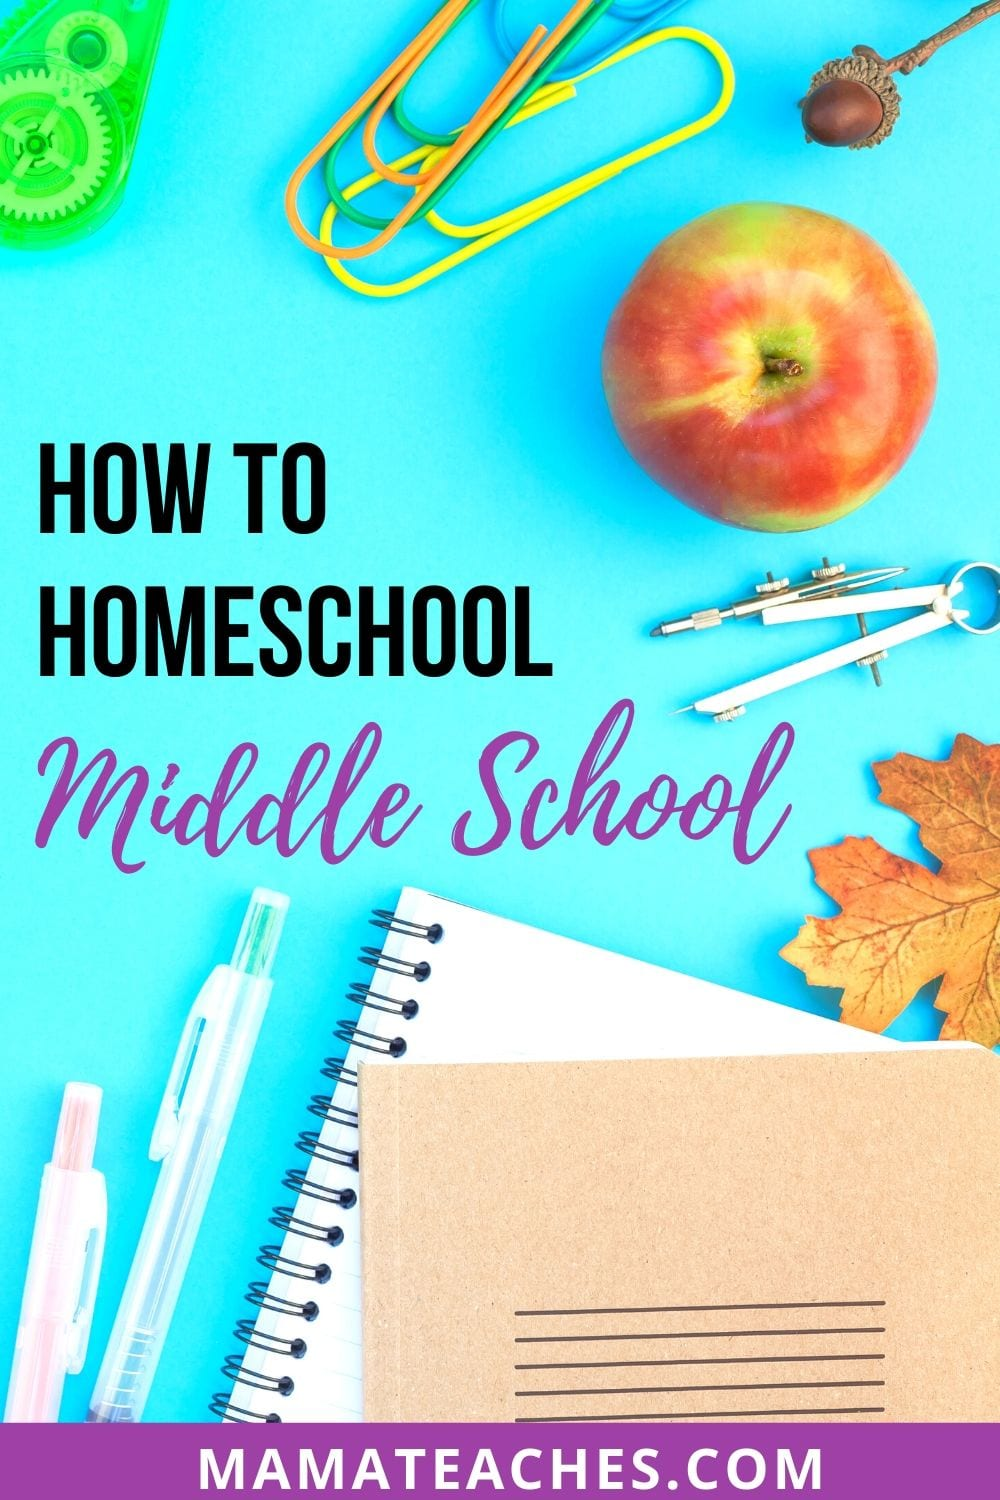 Learn How to Homeschool Middle School - MamaTeaches.com